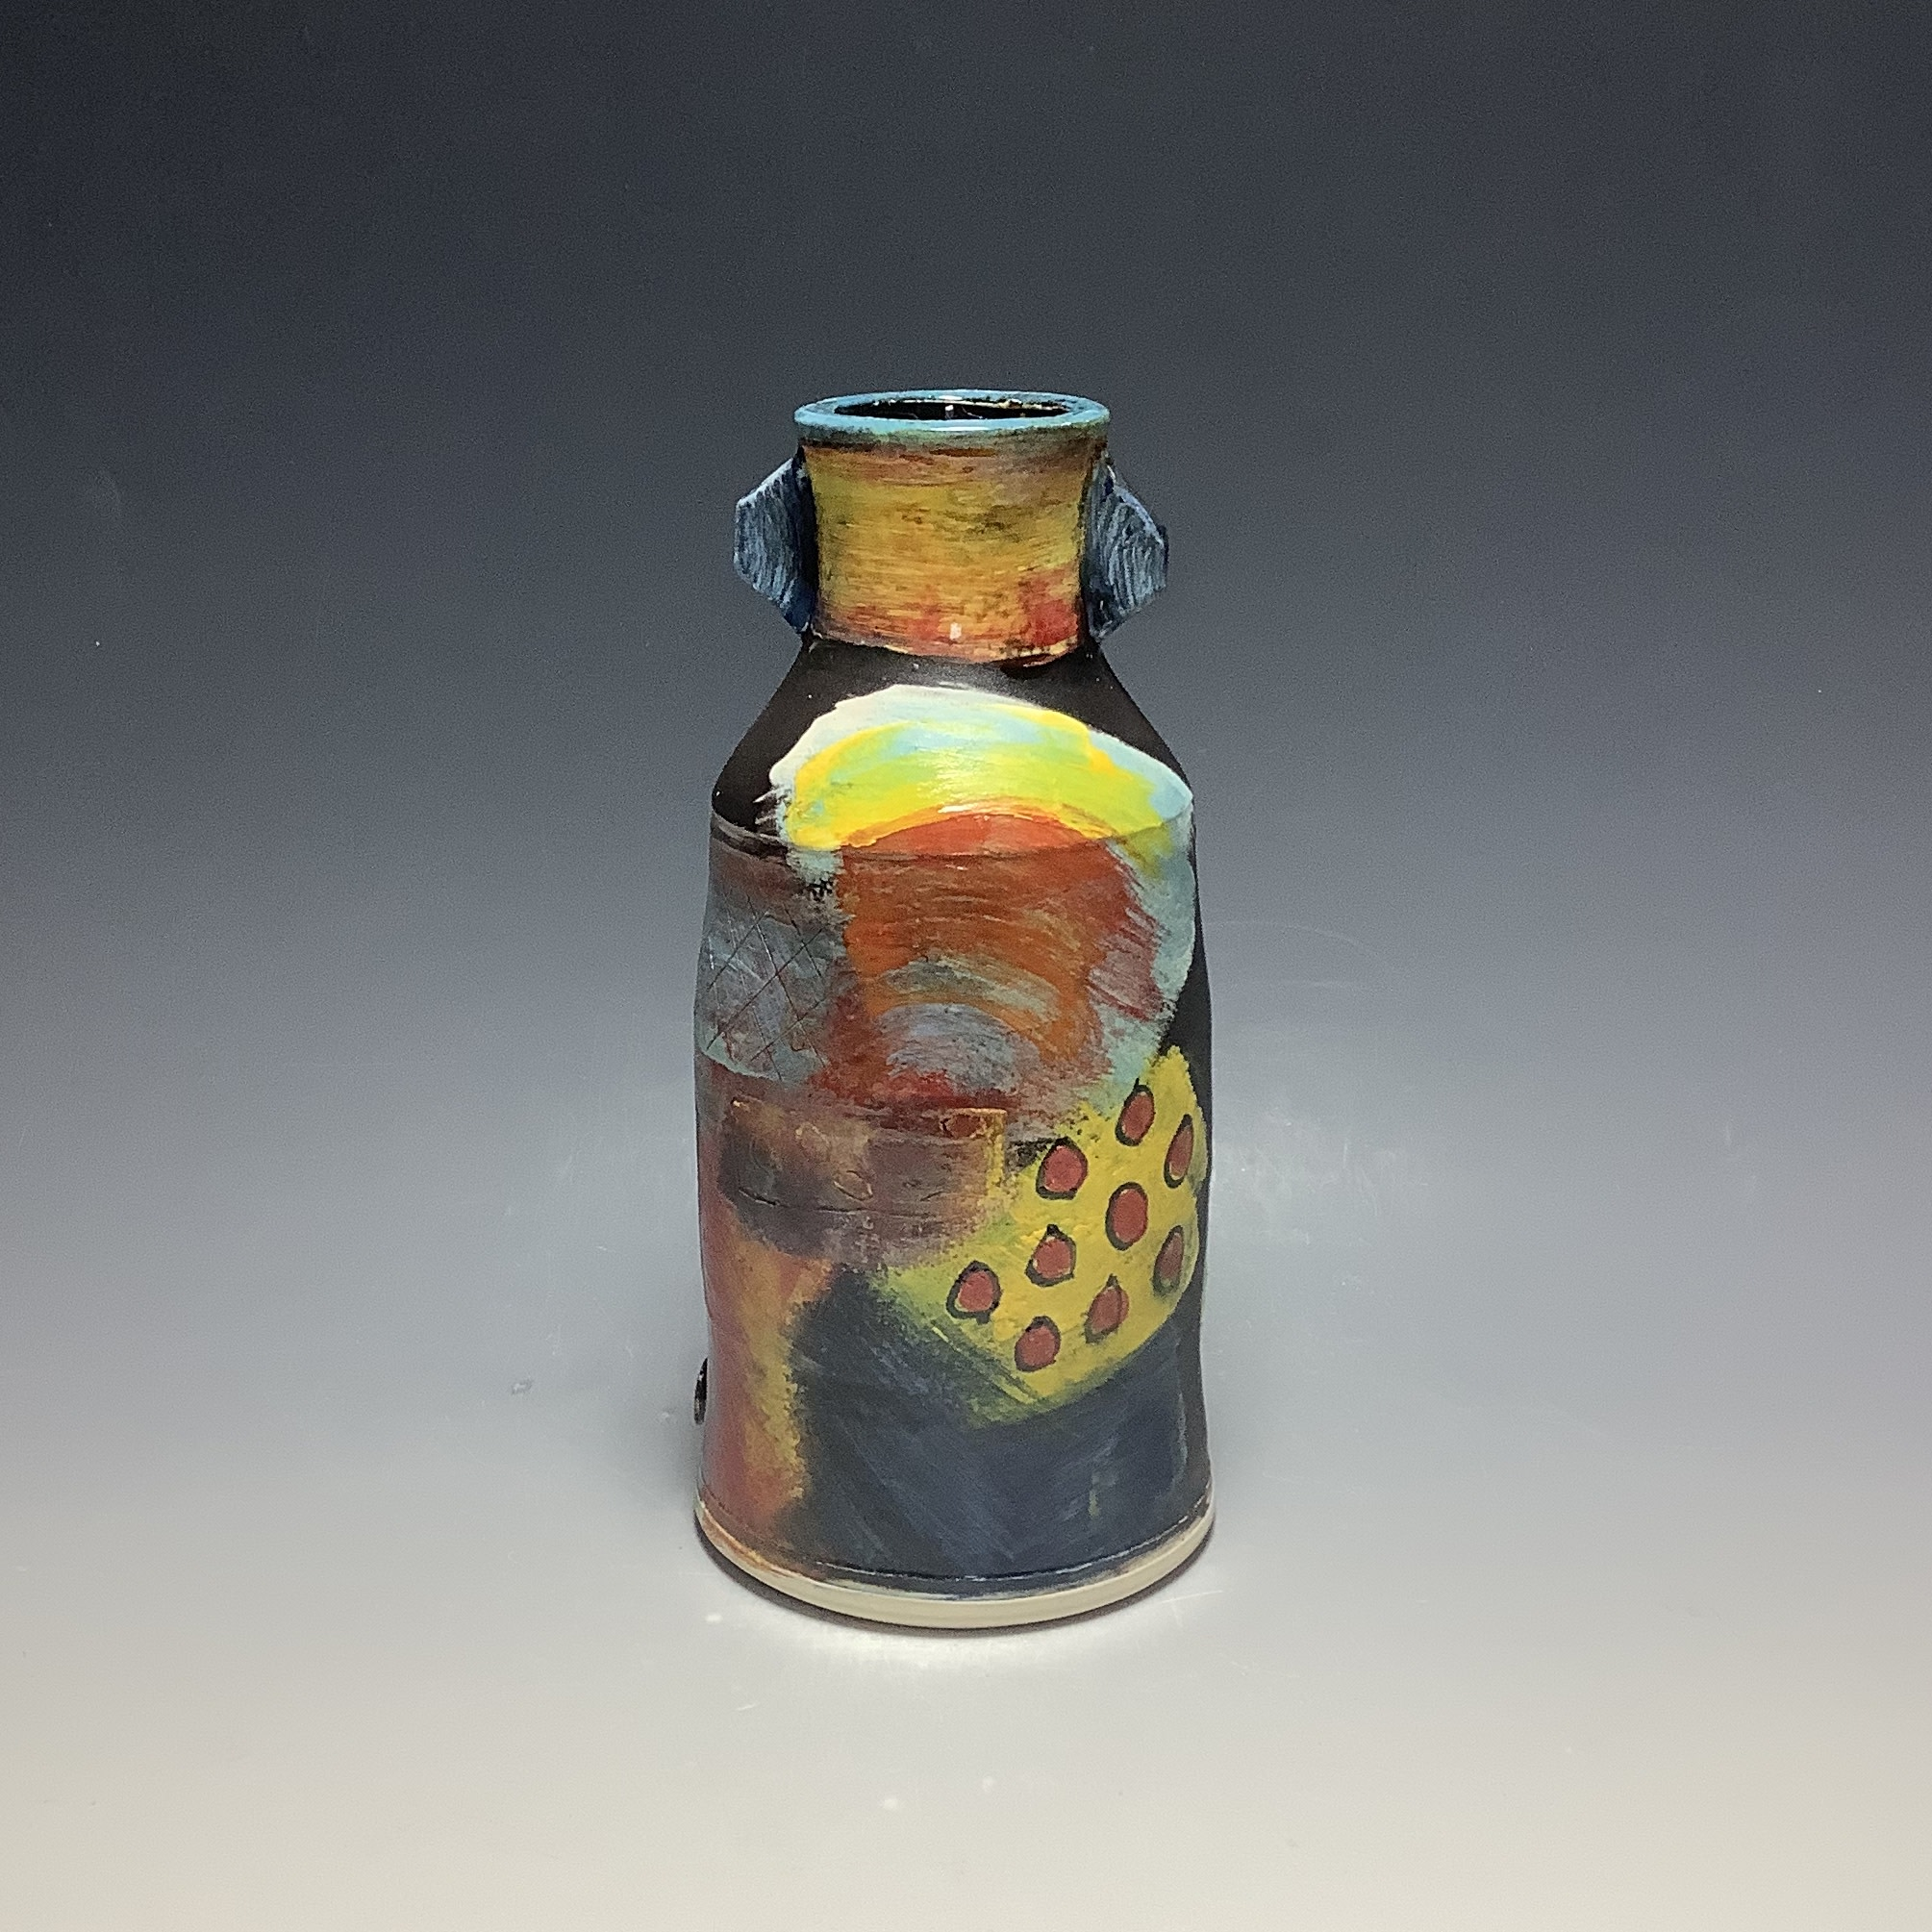 "<span class=""link fancybox-details-link""><a href=""/artists/100-john-pollex/works/6831-john-pollex-bottle-with-neck-attachment-2020/"">View Detail Page</a></span><div class=""artist""><strong>John Pollex</strong></div> b. 1941 <div class=""title""><em>Bottle with neck attachment</em>, 2020</div> <div class=""signed_and_dated"">impressed with the artist's seal mark 'JP'</div> <div class=""medium"">white earthenware decorated with coloured slips</div> <div class=""dimensions"">h. 8.5in</div><div class=""price"">£220.00</div><div class=""copyright_line"">Ownart: £22 x 19 Months, 0% APR</div>"